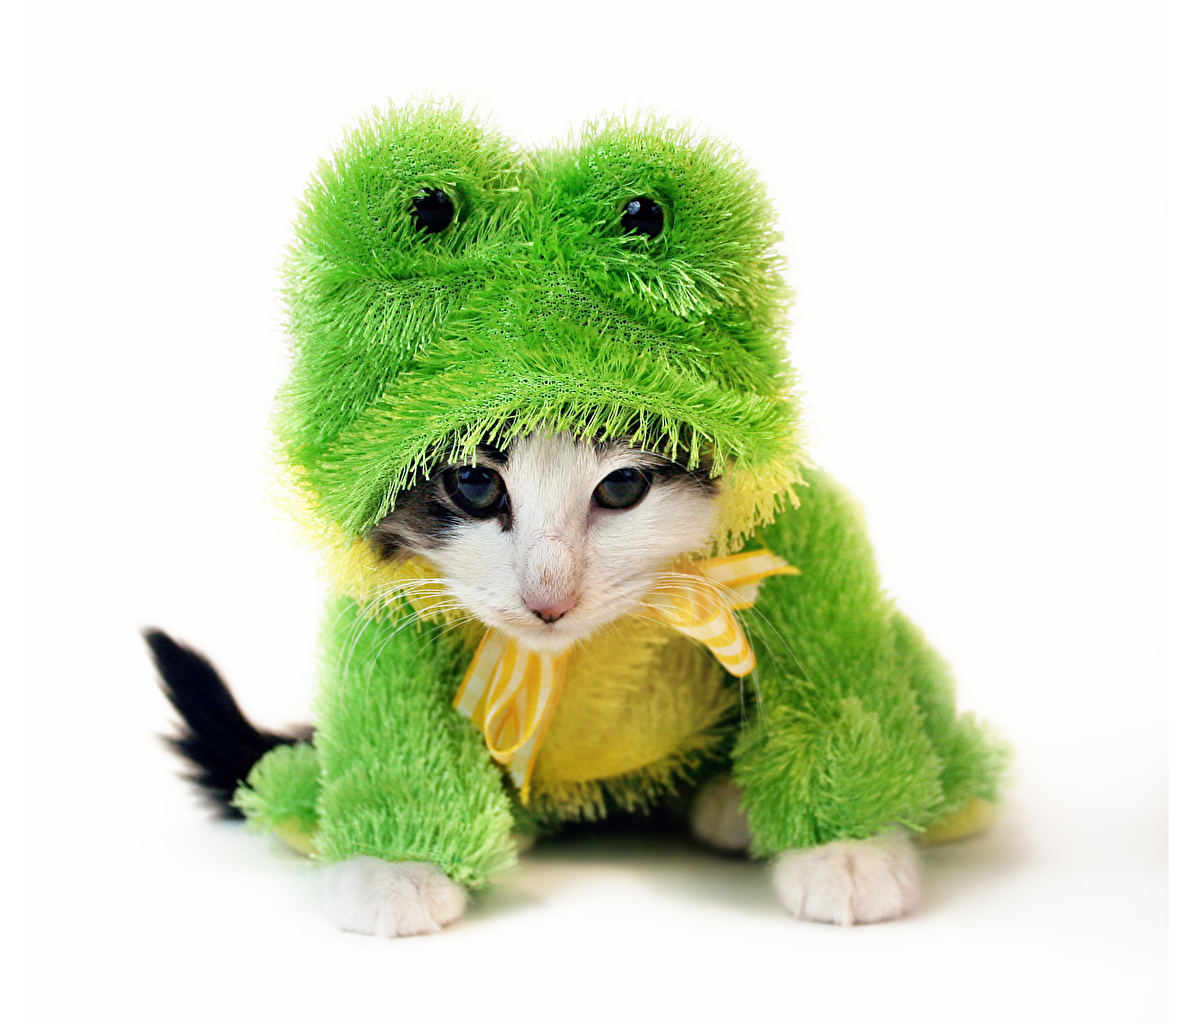 Images Animals Cats Frogs Uniform Funny Staring White background Glance